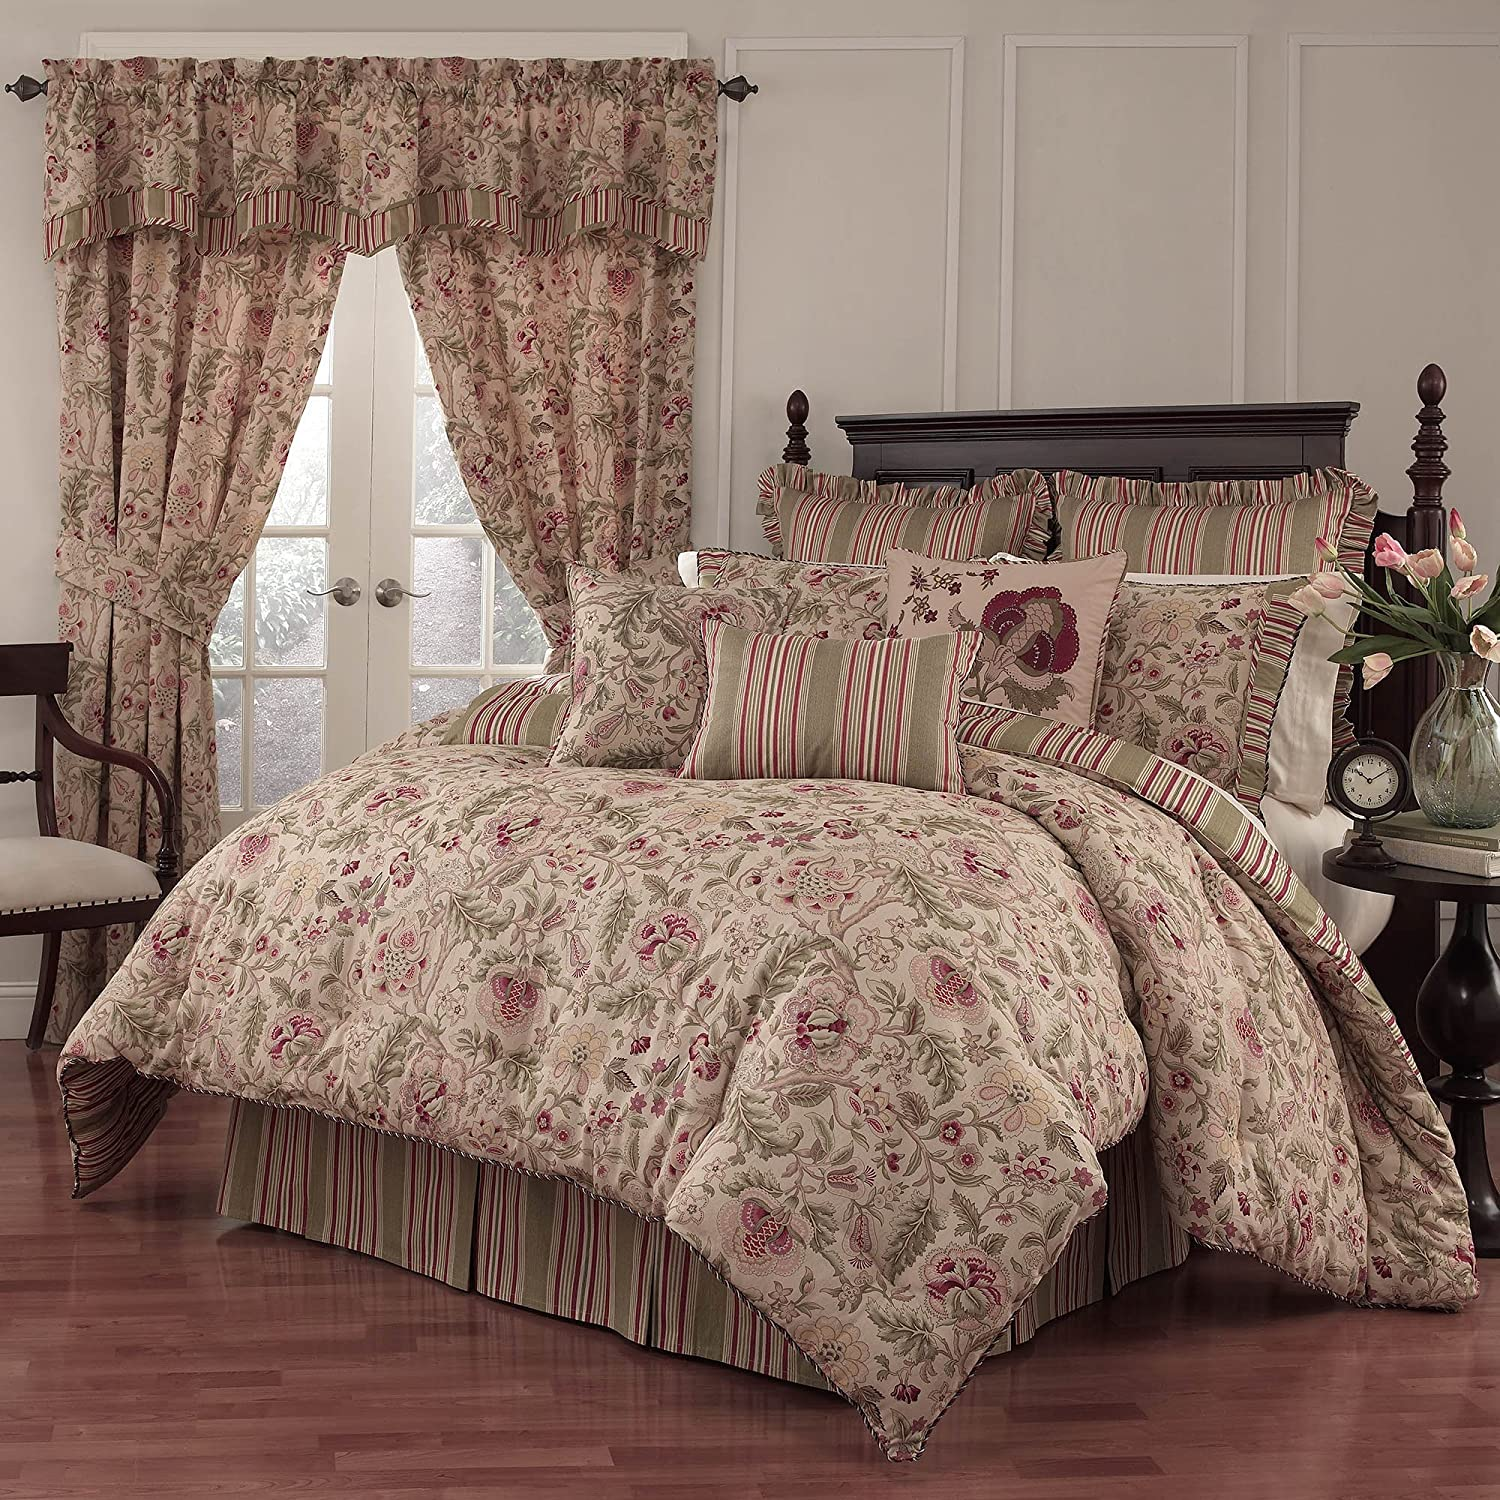 WAVERLY Imperial Dress Antique Comforter Set, 96x92